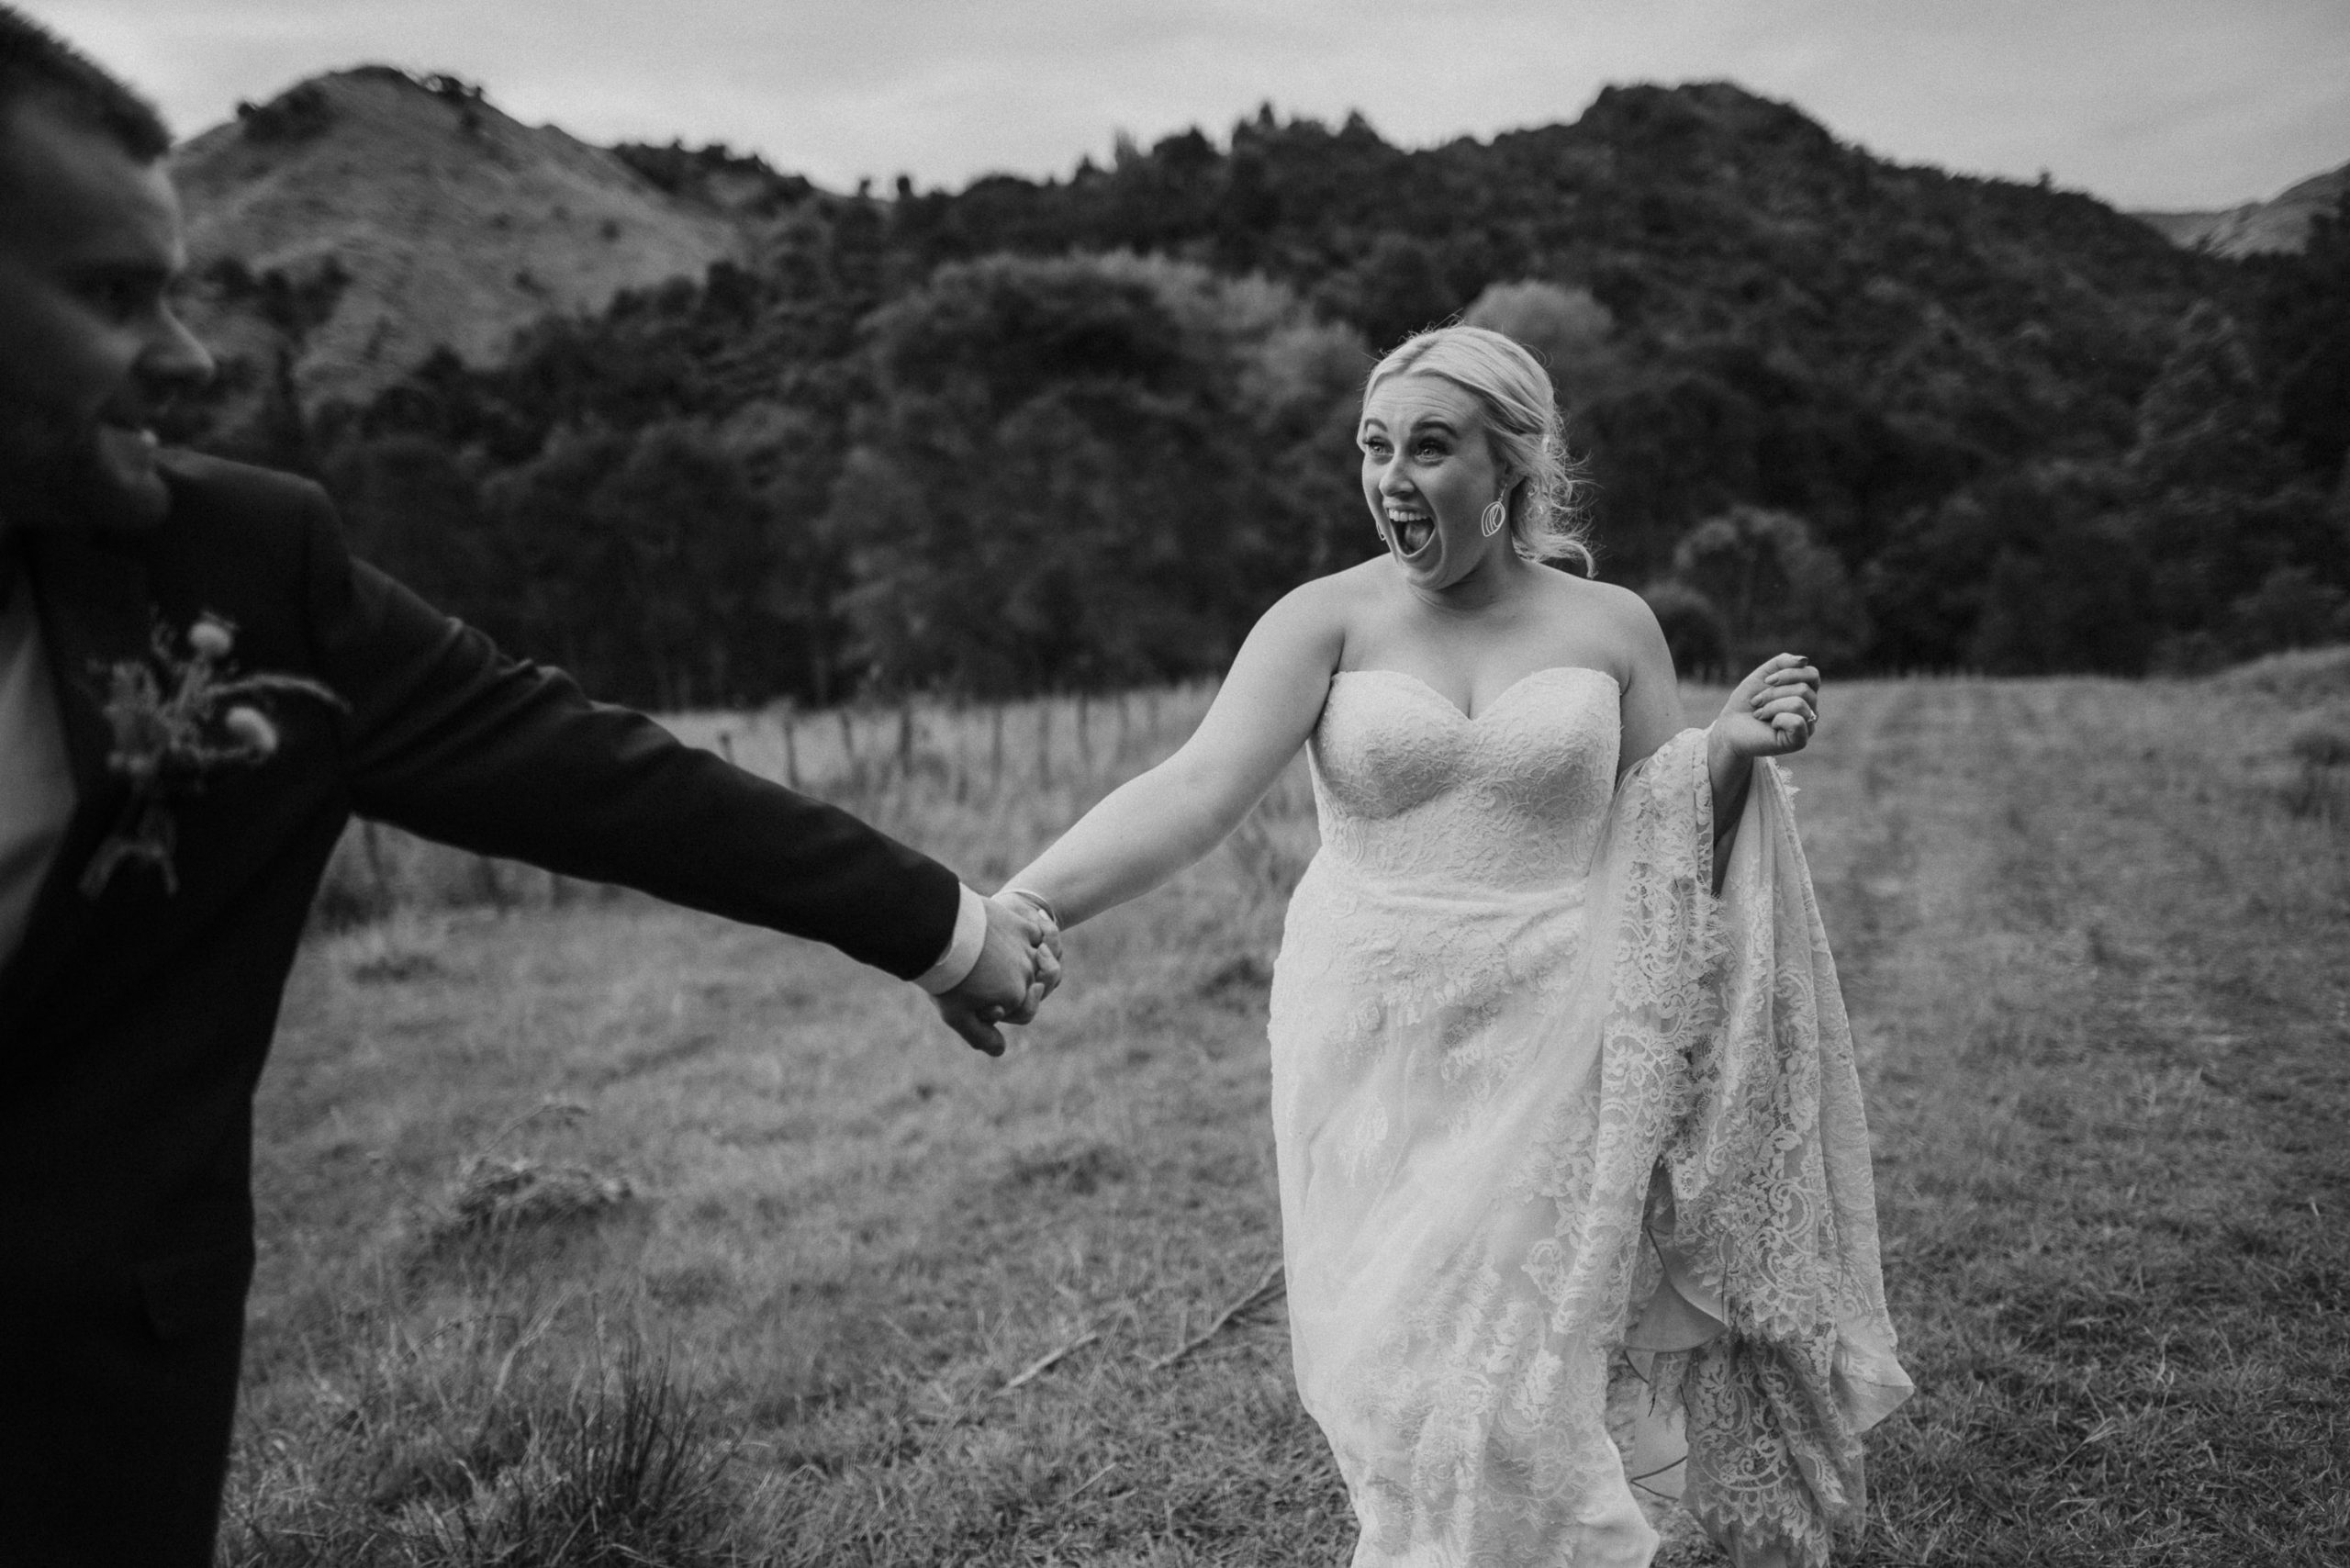 New Zealand photographer Binh capturing this wedding moment in black and white